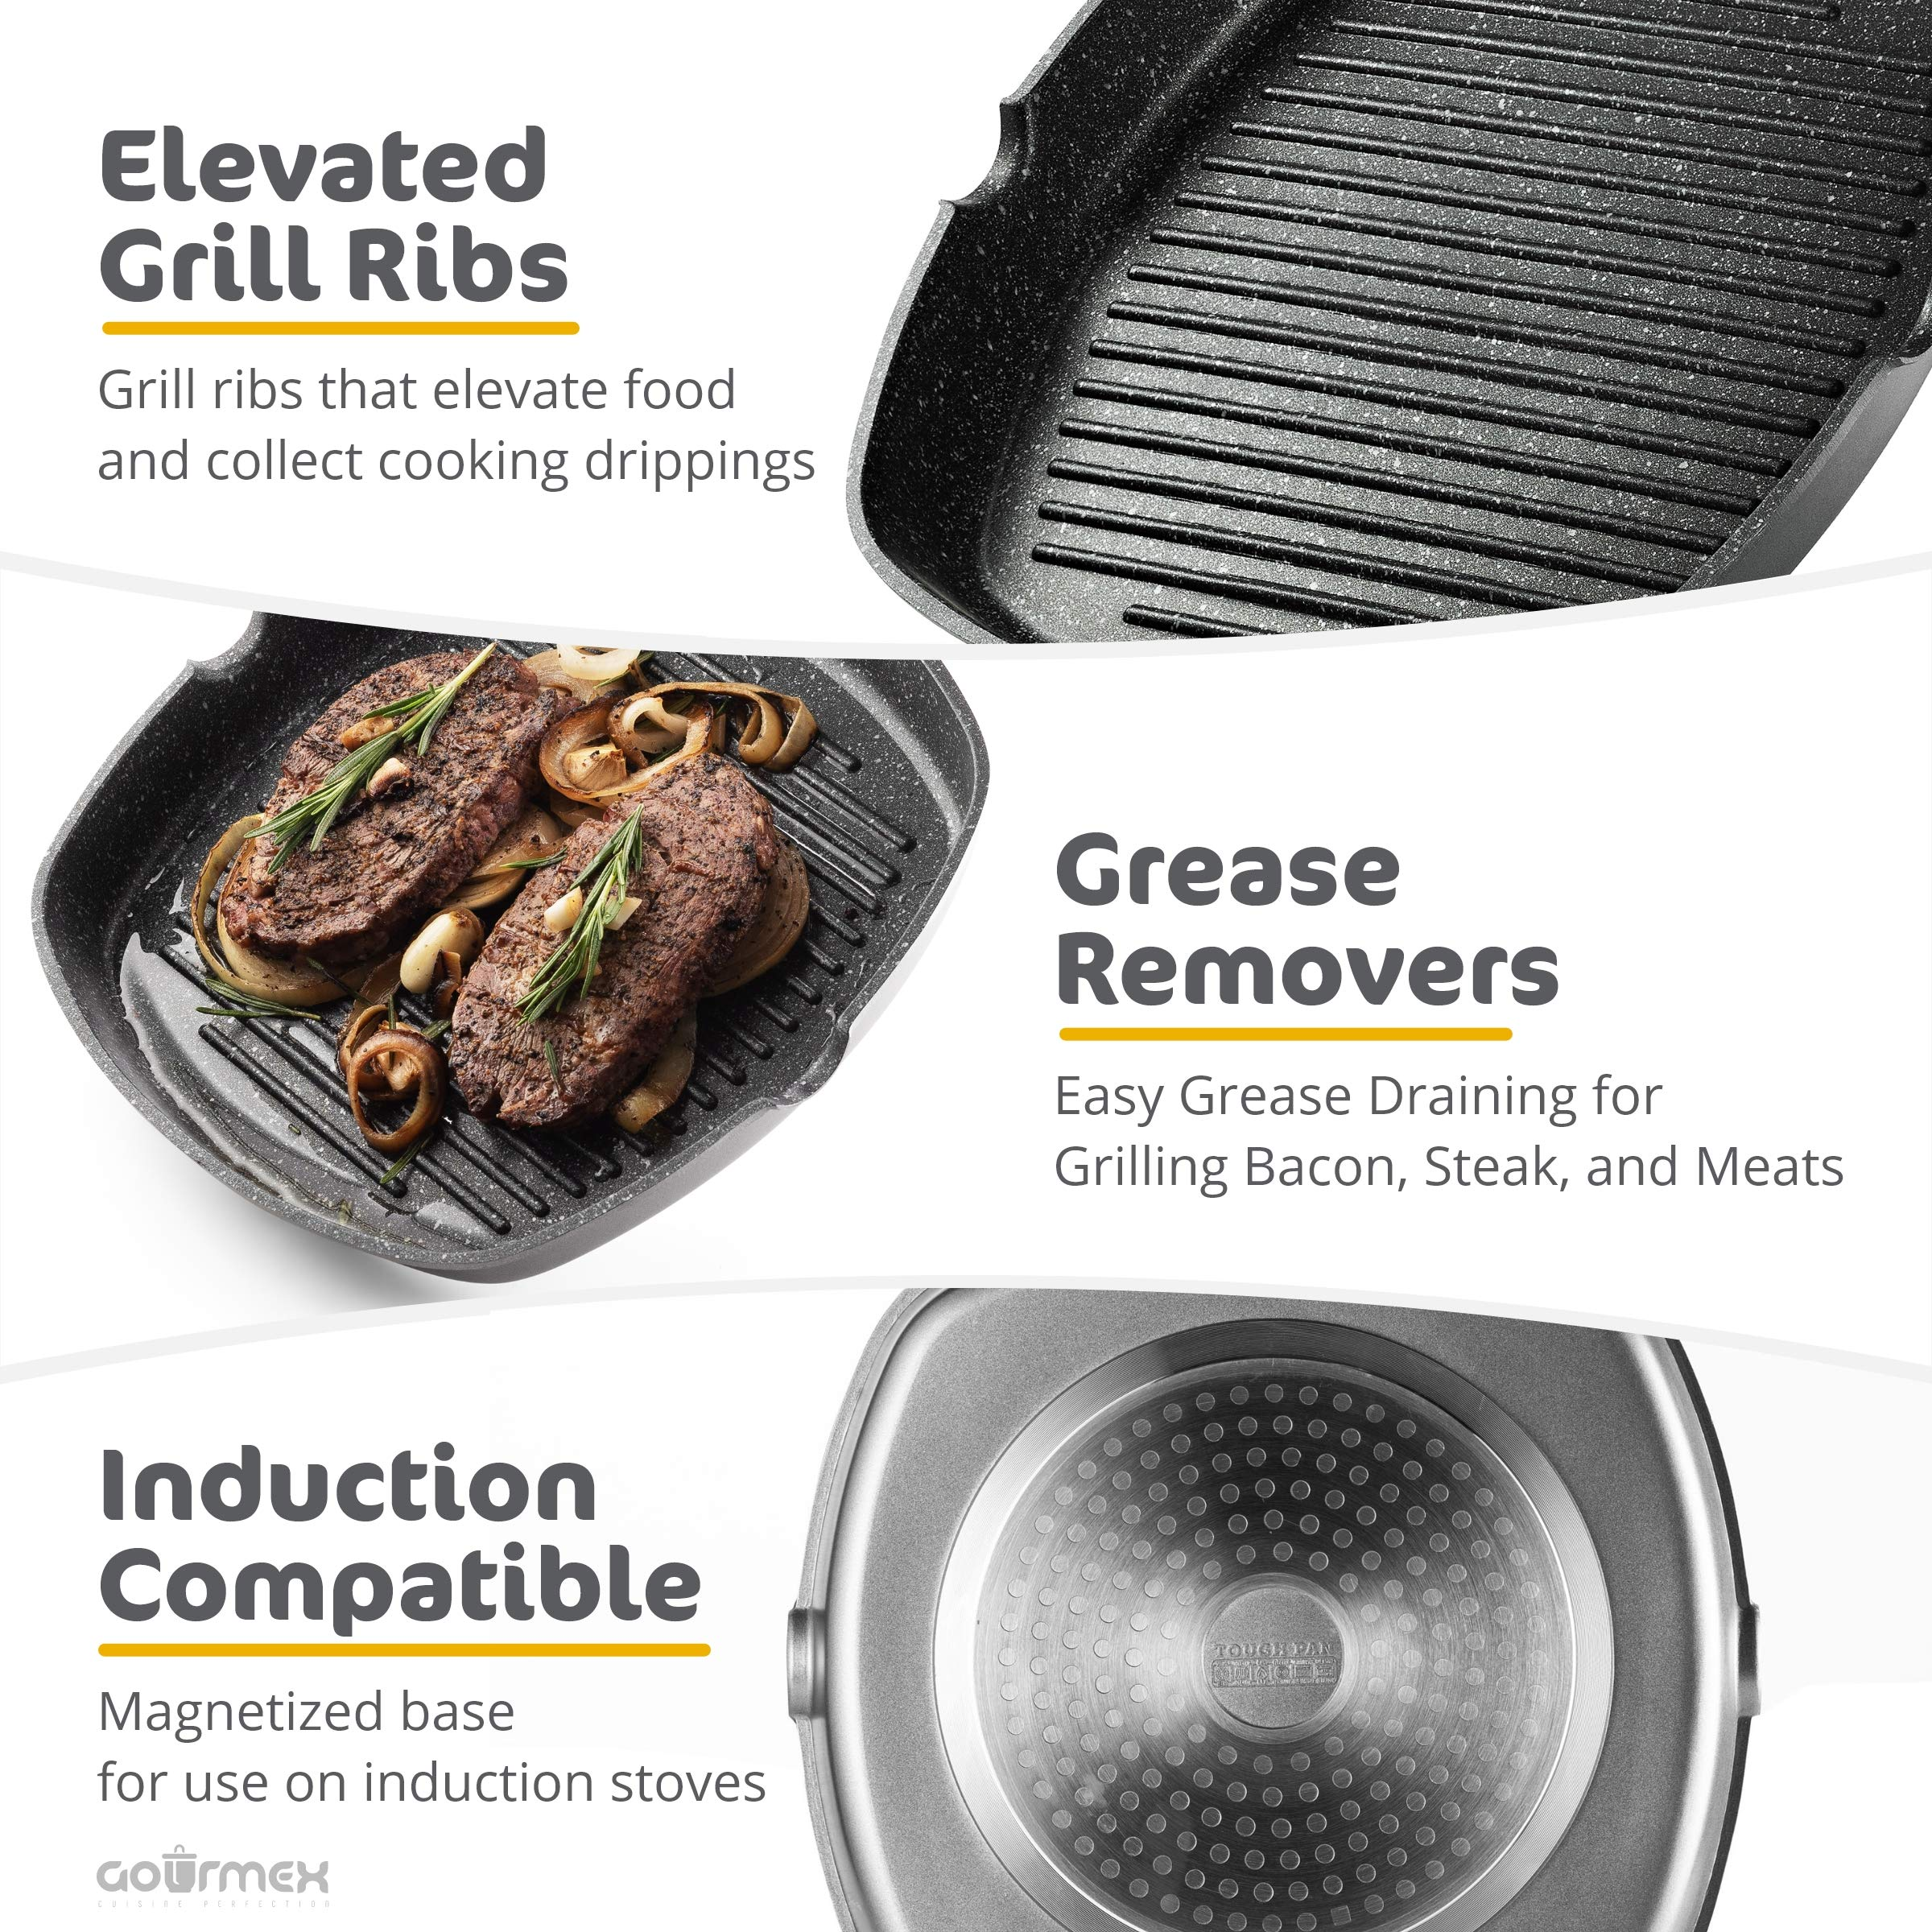 GOURMEX Toughpan Induction Grill Pan, Black, With PFOA Free Nonstick Coating | Great Skillet for Meat, Fish and Vegetables | Perfect for All Heat Sources | Dishwasher Safe Cookware (11'' Grill Pan) by GOURMEX (Image #6)